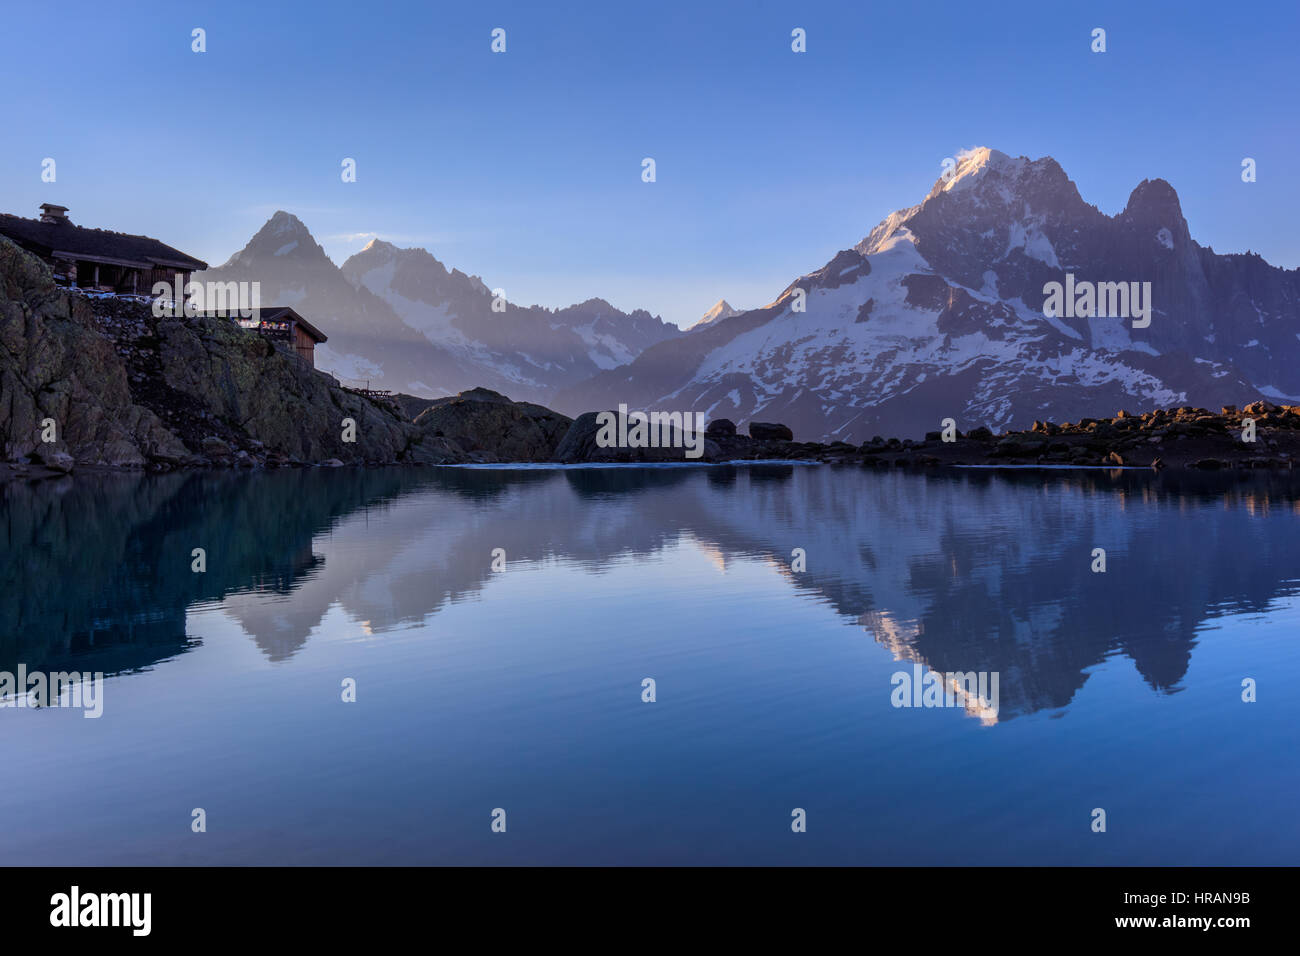 Mont Blanc Massif Reflected in Lac Blanc, Graian Alps, France Stock Photo